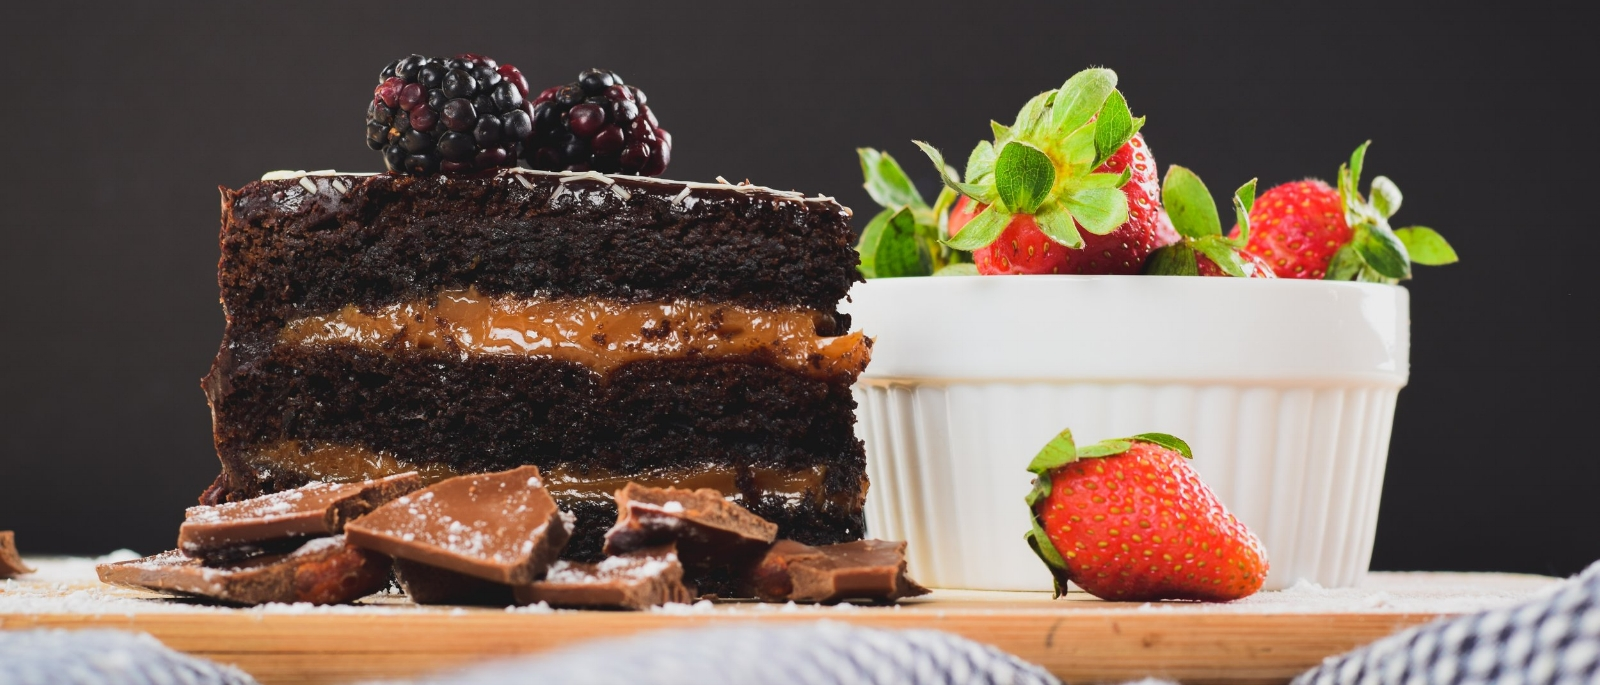 quinoa-chocolate-cake-recipe-raw.jpg